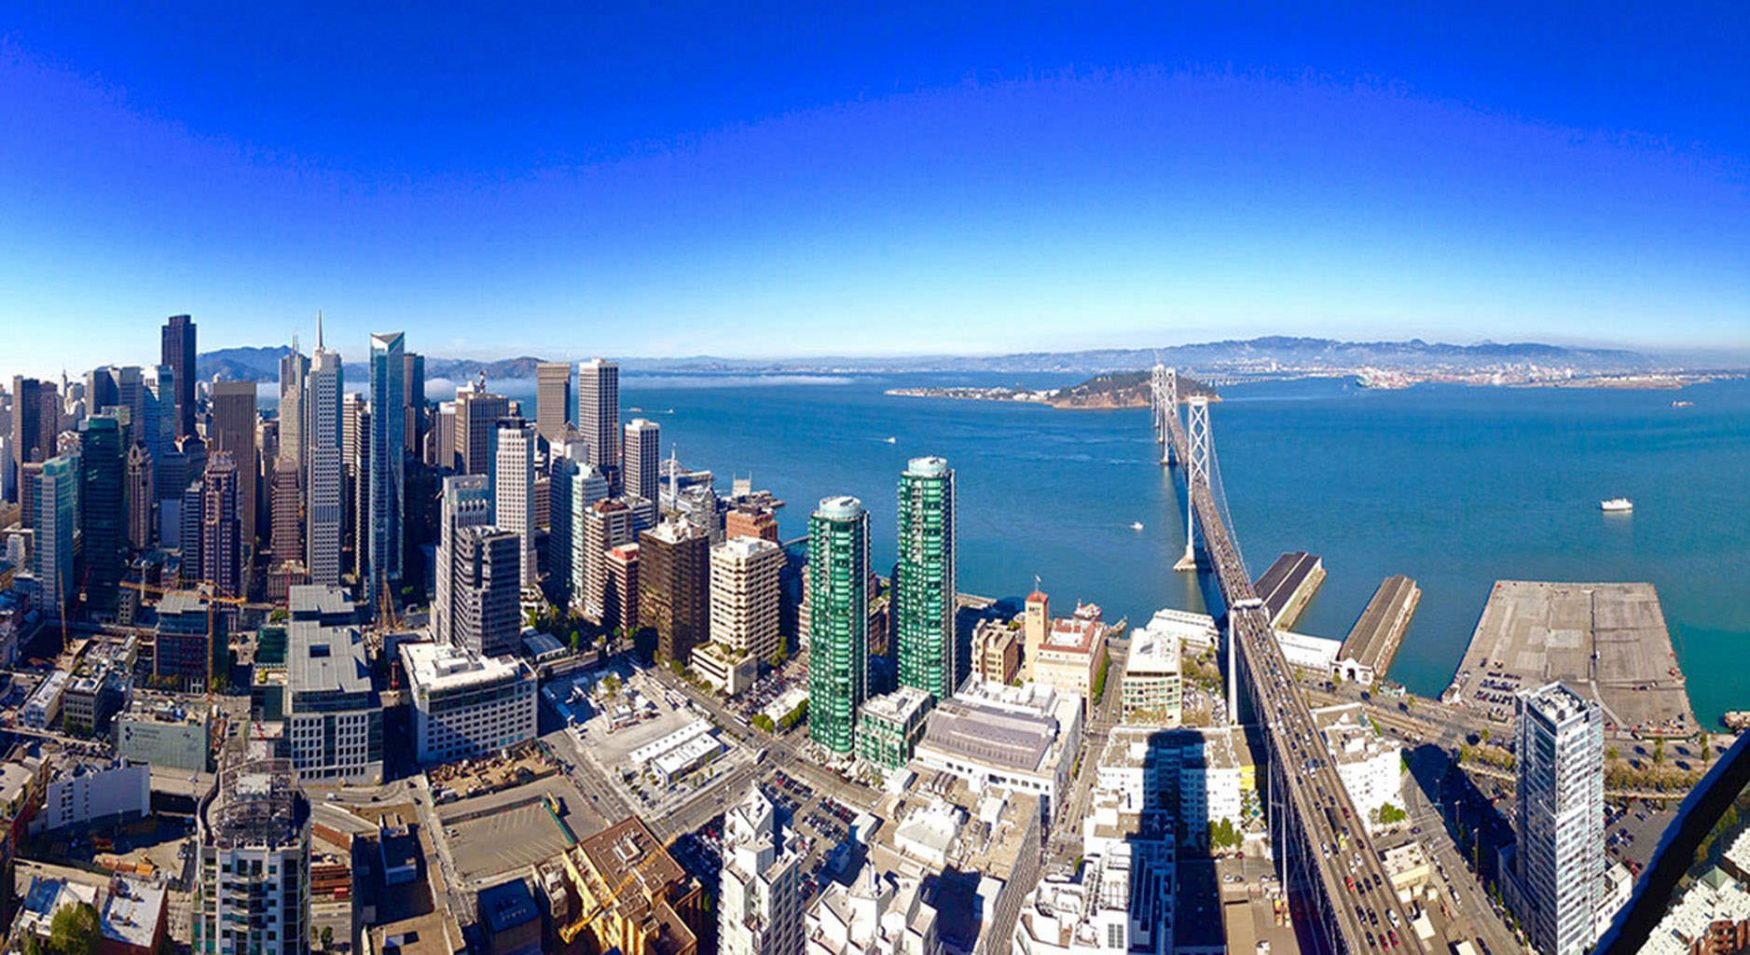 San Francisco Real Estate Agent Mike Broermann for Sale; GroupMB Sales, Purchases, Listings, Rentals of Homes and C